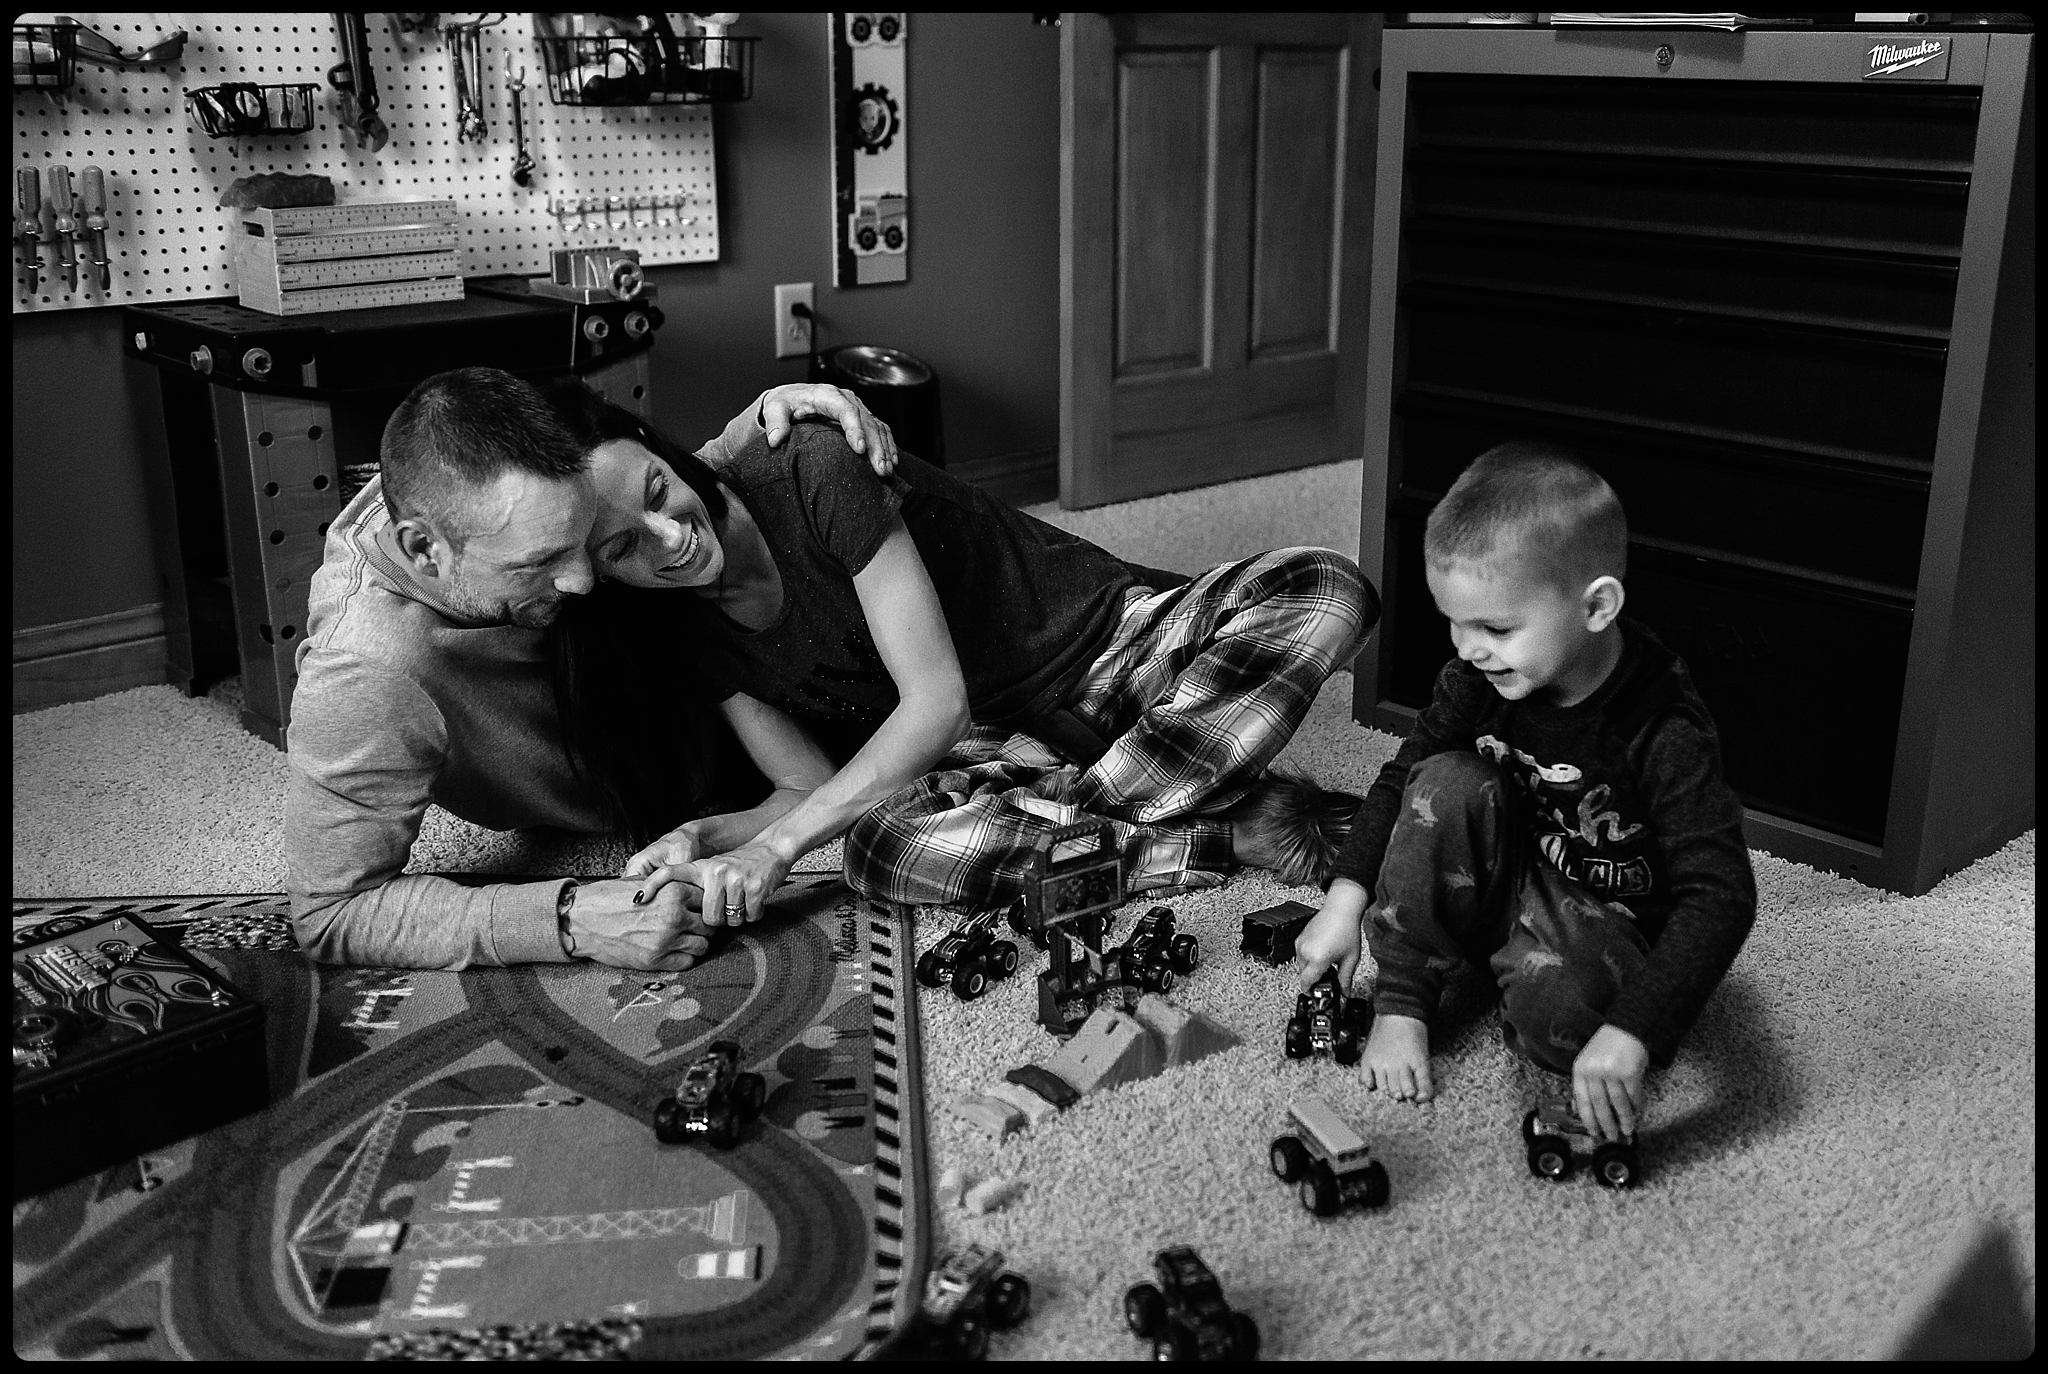 Family playing with cars in a boy's bedroom.